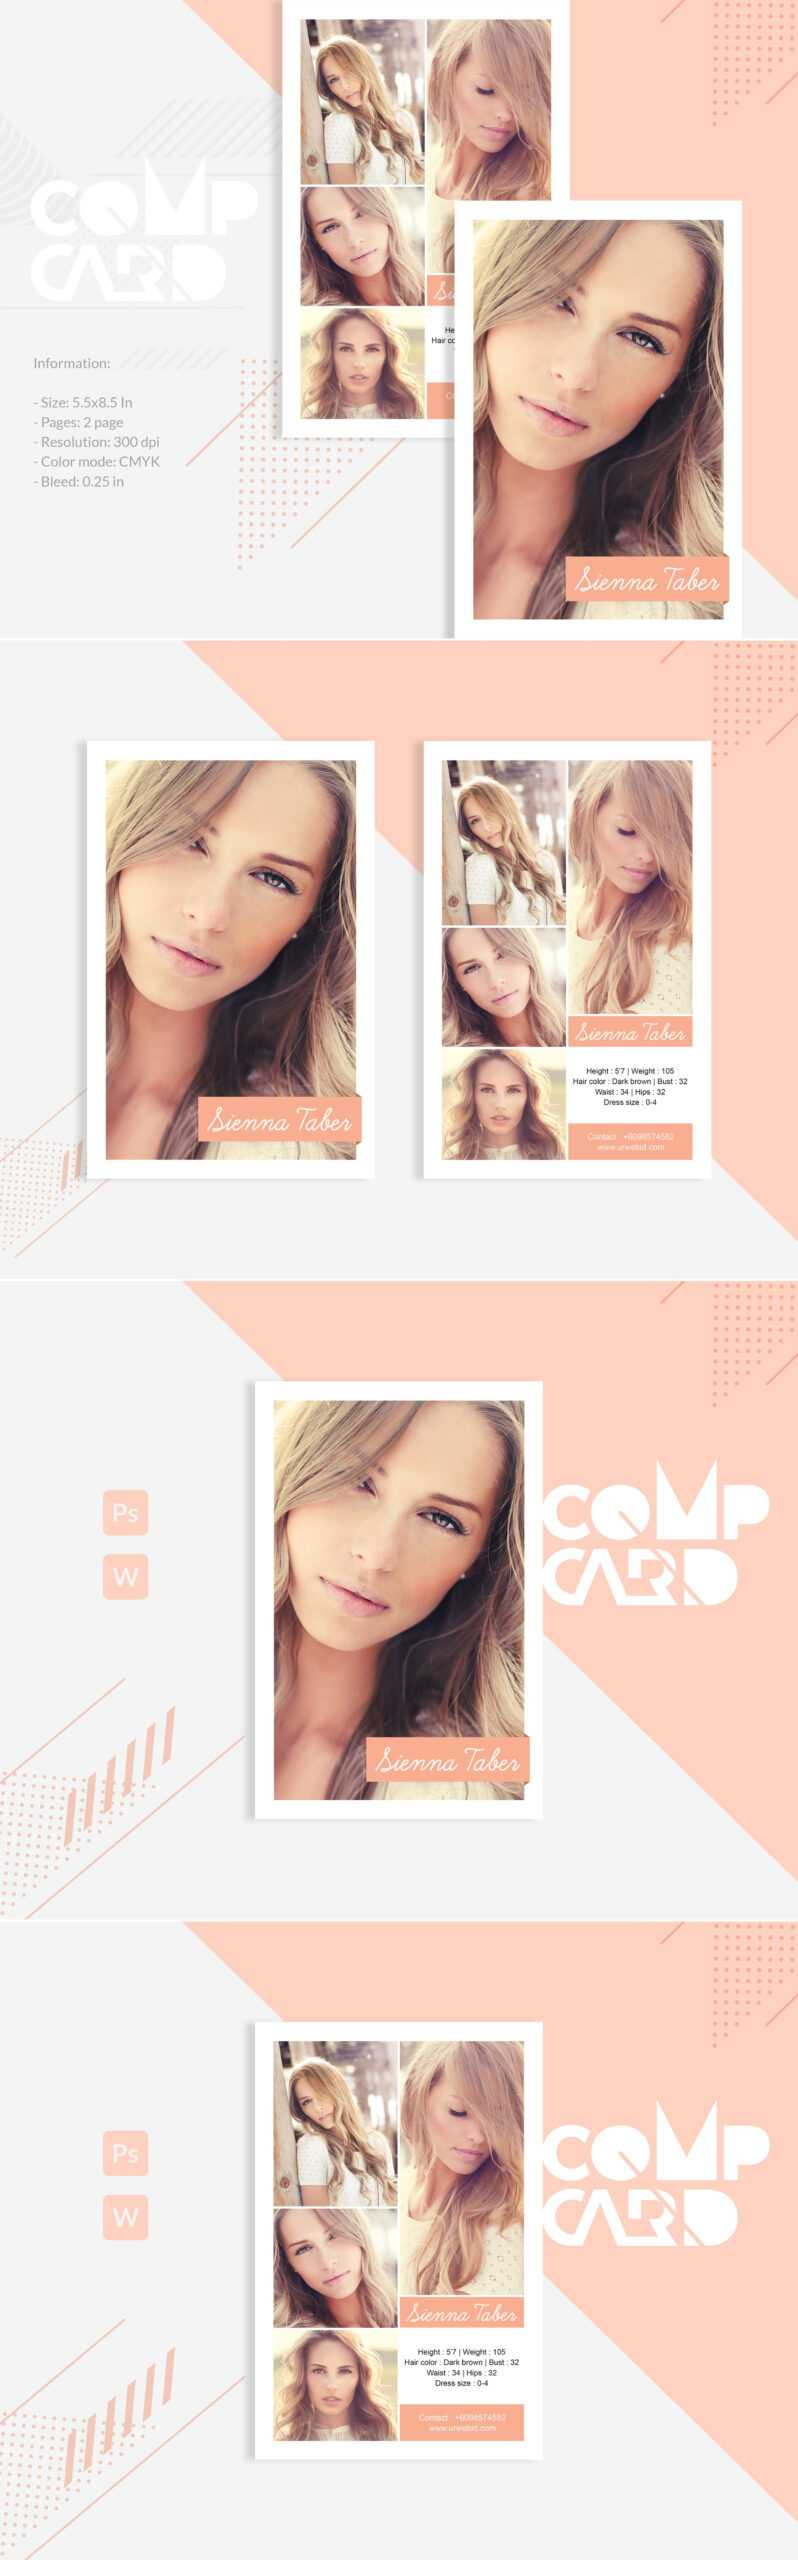 Sienna Taber - Modeling Comp Card Corporate Identity Template Inside Download Comp Card Template